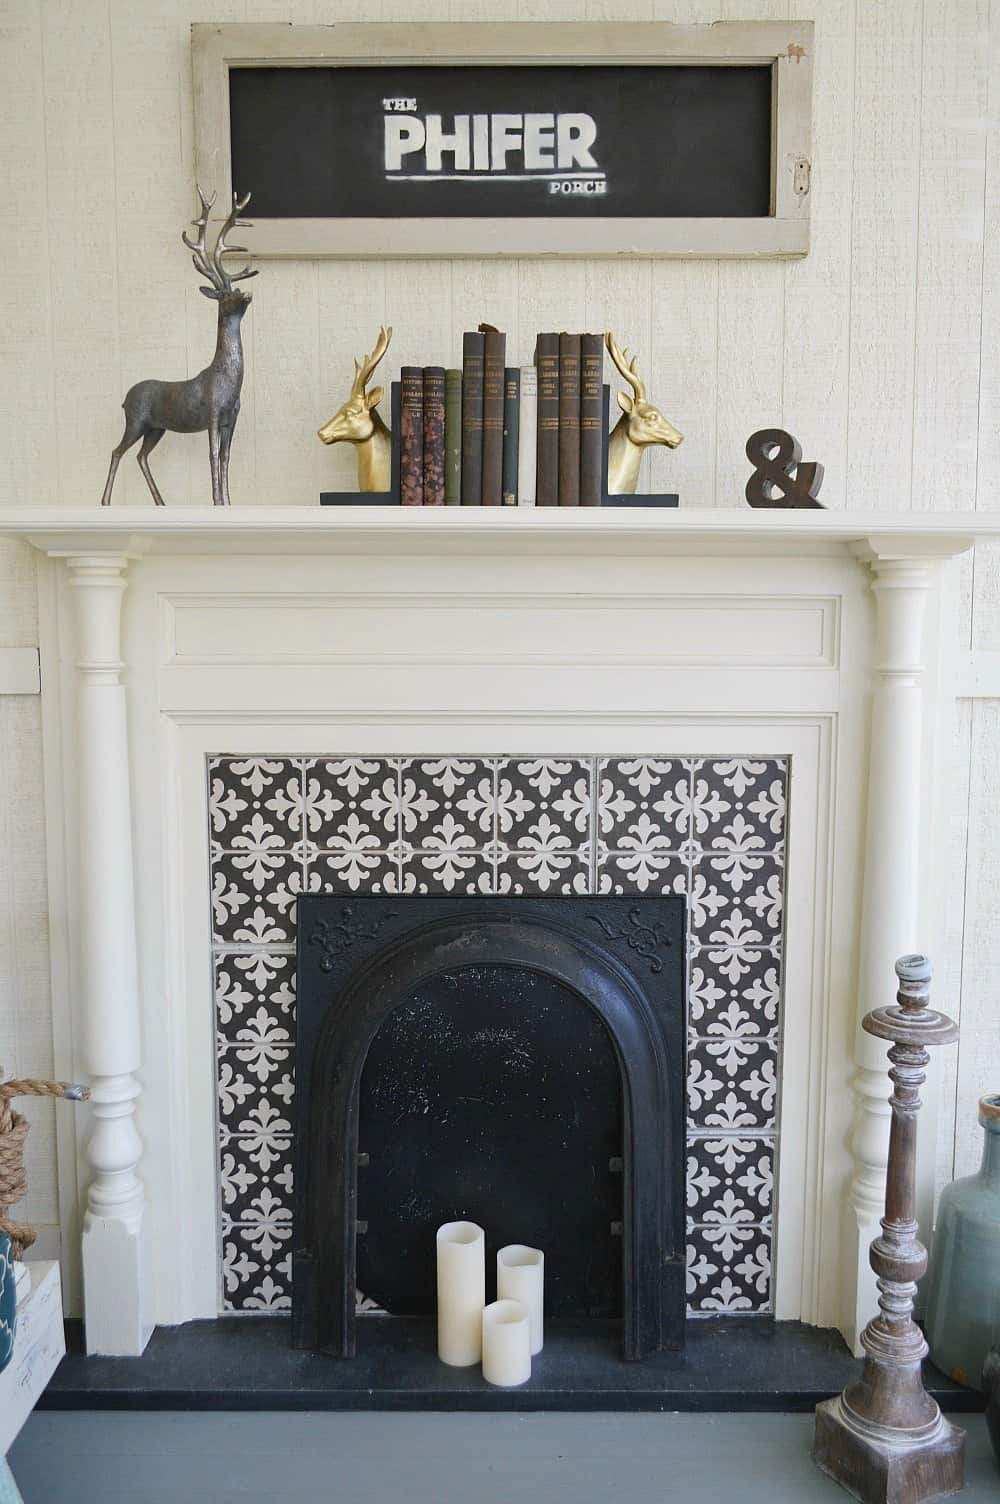 original-fireplace-in-a-southern-fixer-upper-repurposed-as-a-decorative-accent-on-the-covered-porch